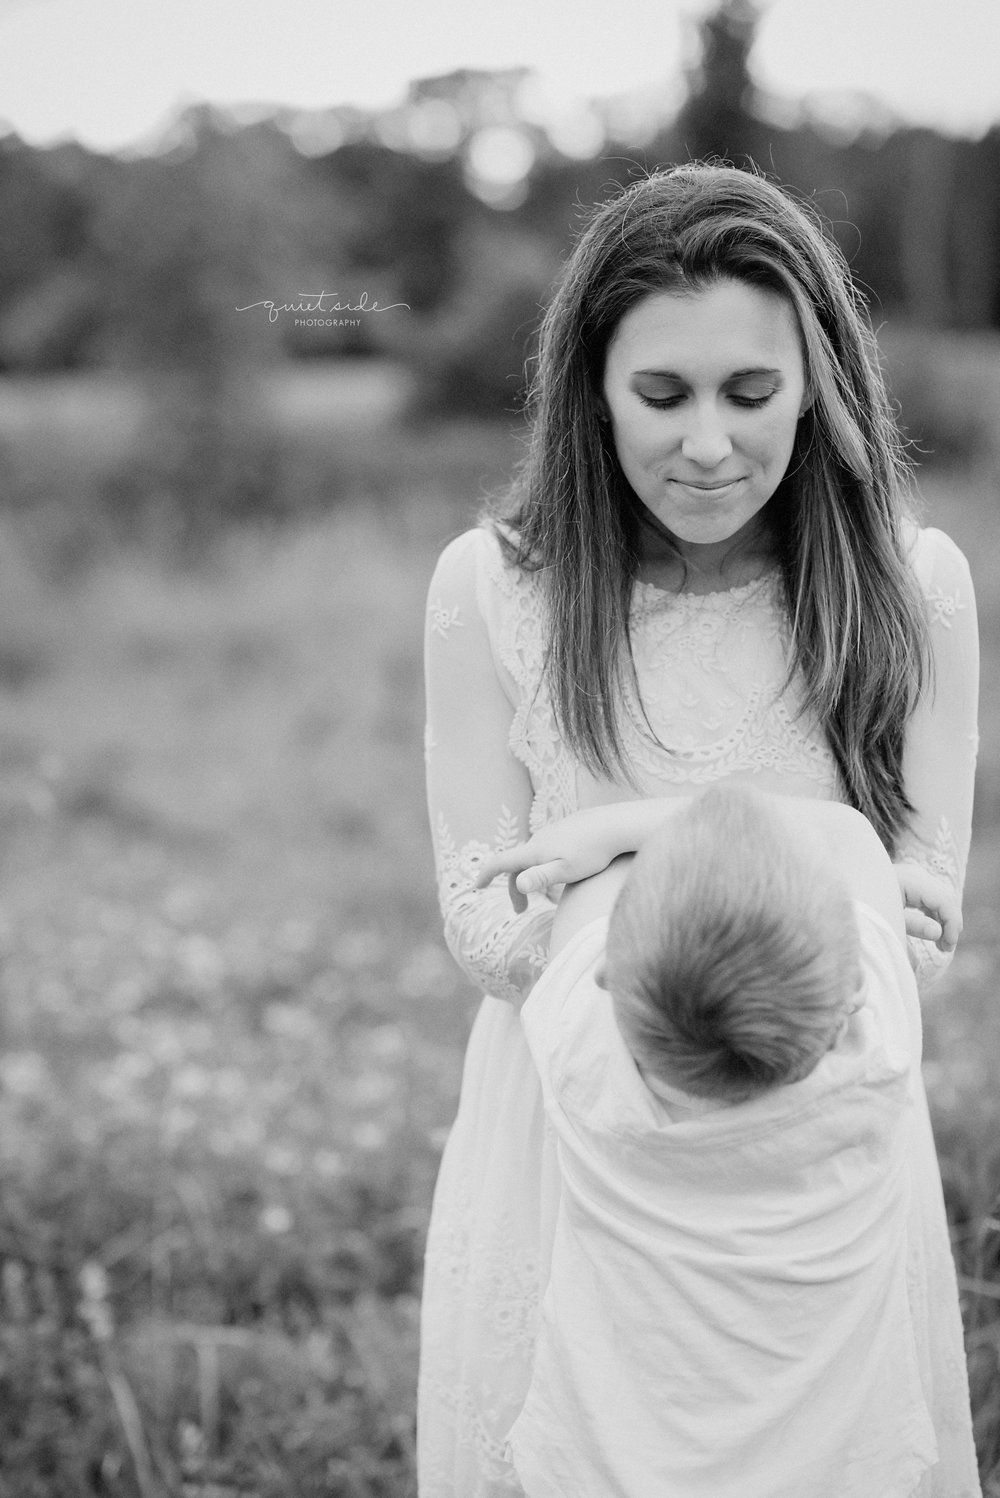 Witinok_Motherhood_Family_LoudounCounty_NorthernVA_Virginia_Family_Photographer_Sunset_Field.jpg.jpg